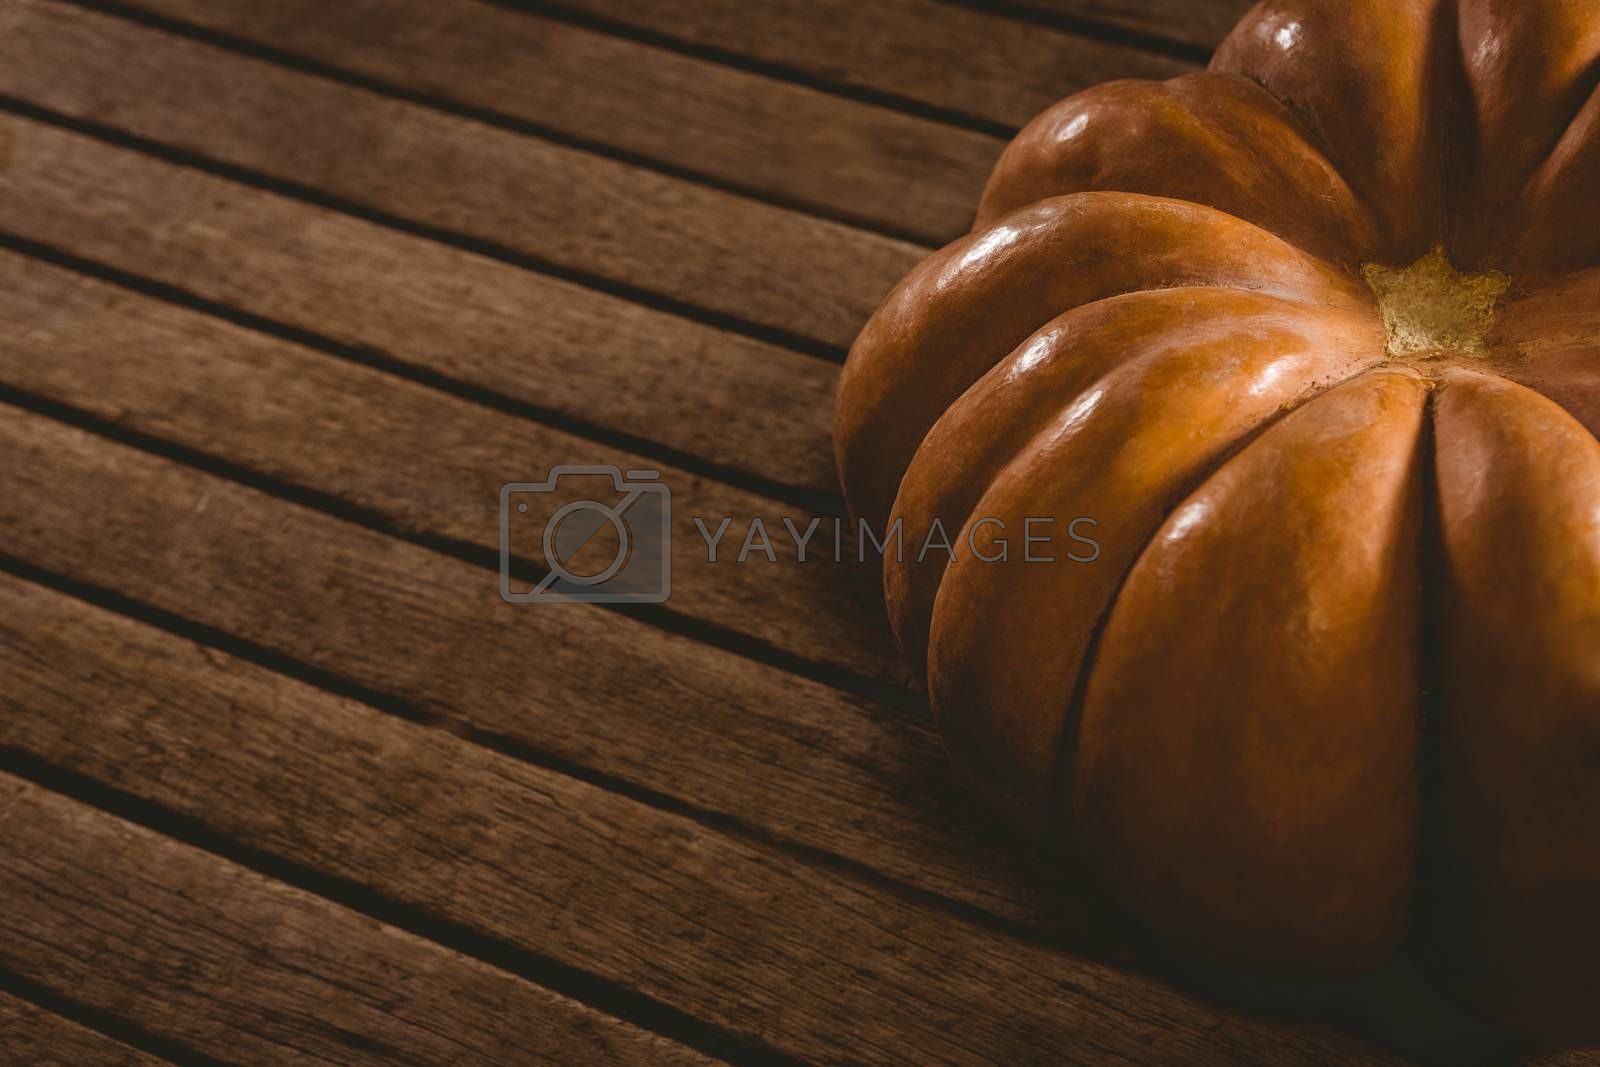 High angle view of pumpkin on table during Halloween